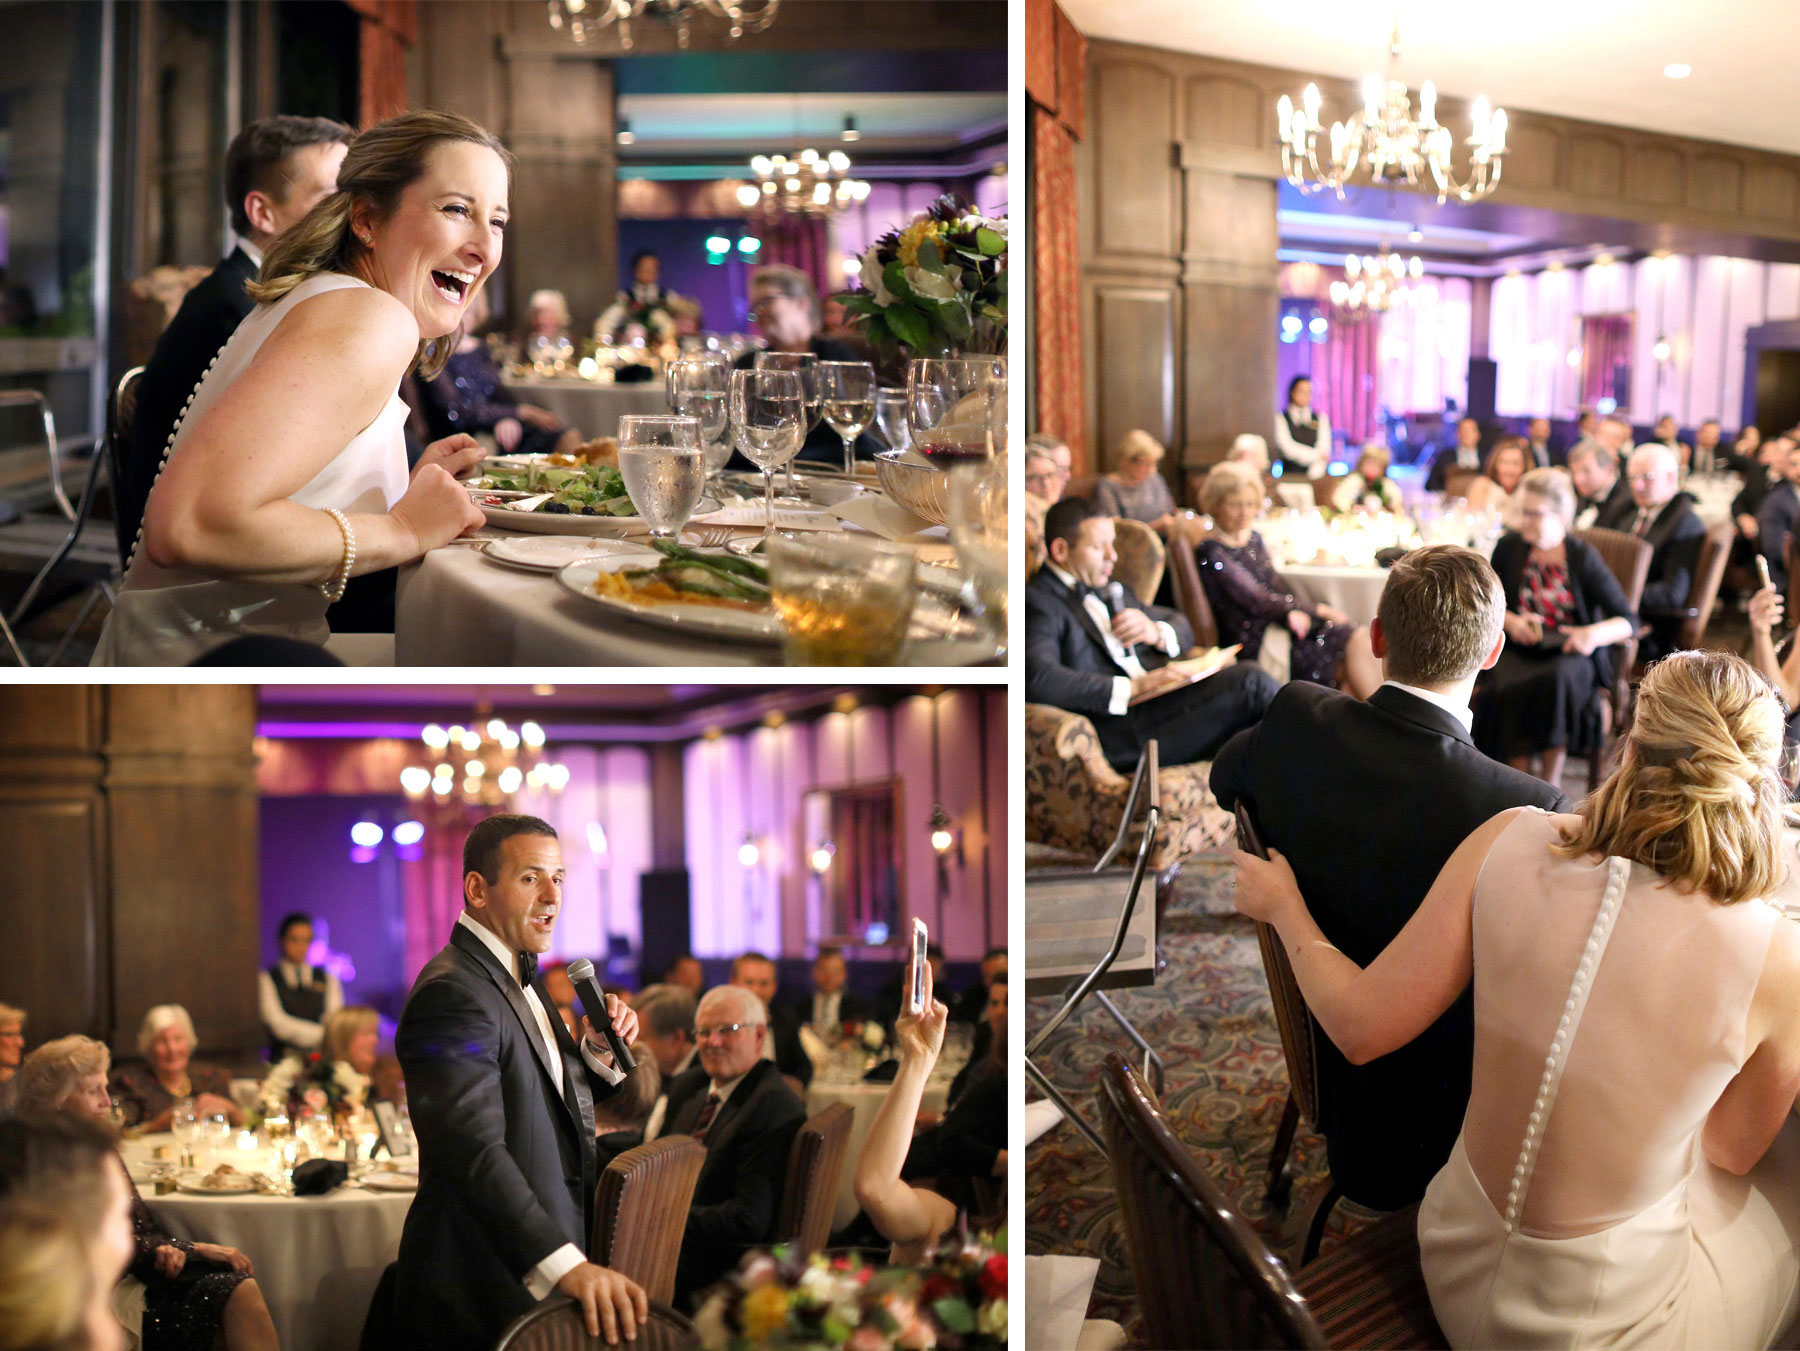 19-Saint-Paul-Minnesota-Wedding-Photographer-by-Andrew-Vick-Photography-Fall-Autumn-Town-and-Country-Club-Reception-Bride-Groom-Groomsmen-Book-Laughter-Speeches-Kathryn-and-Sam.jpg